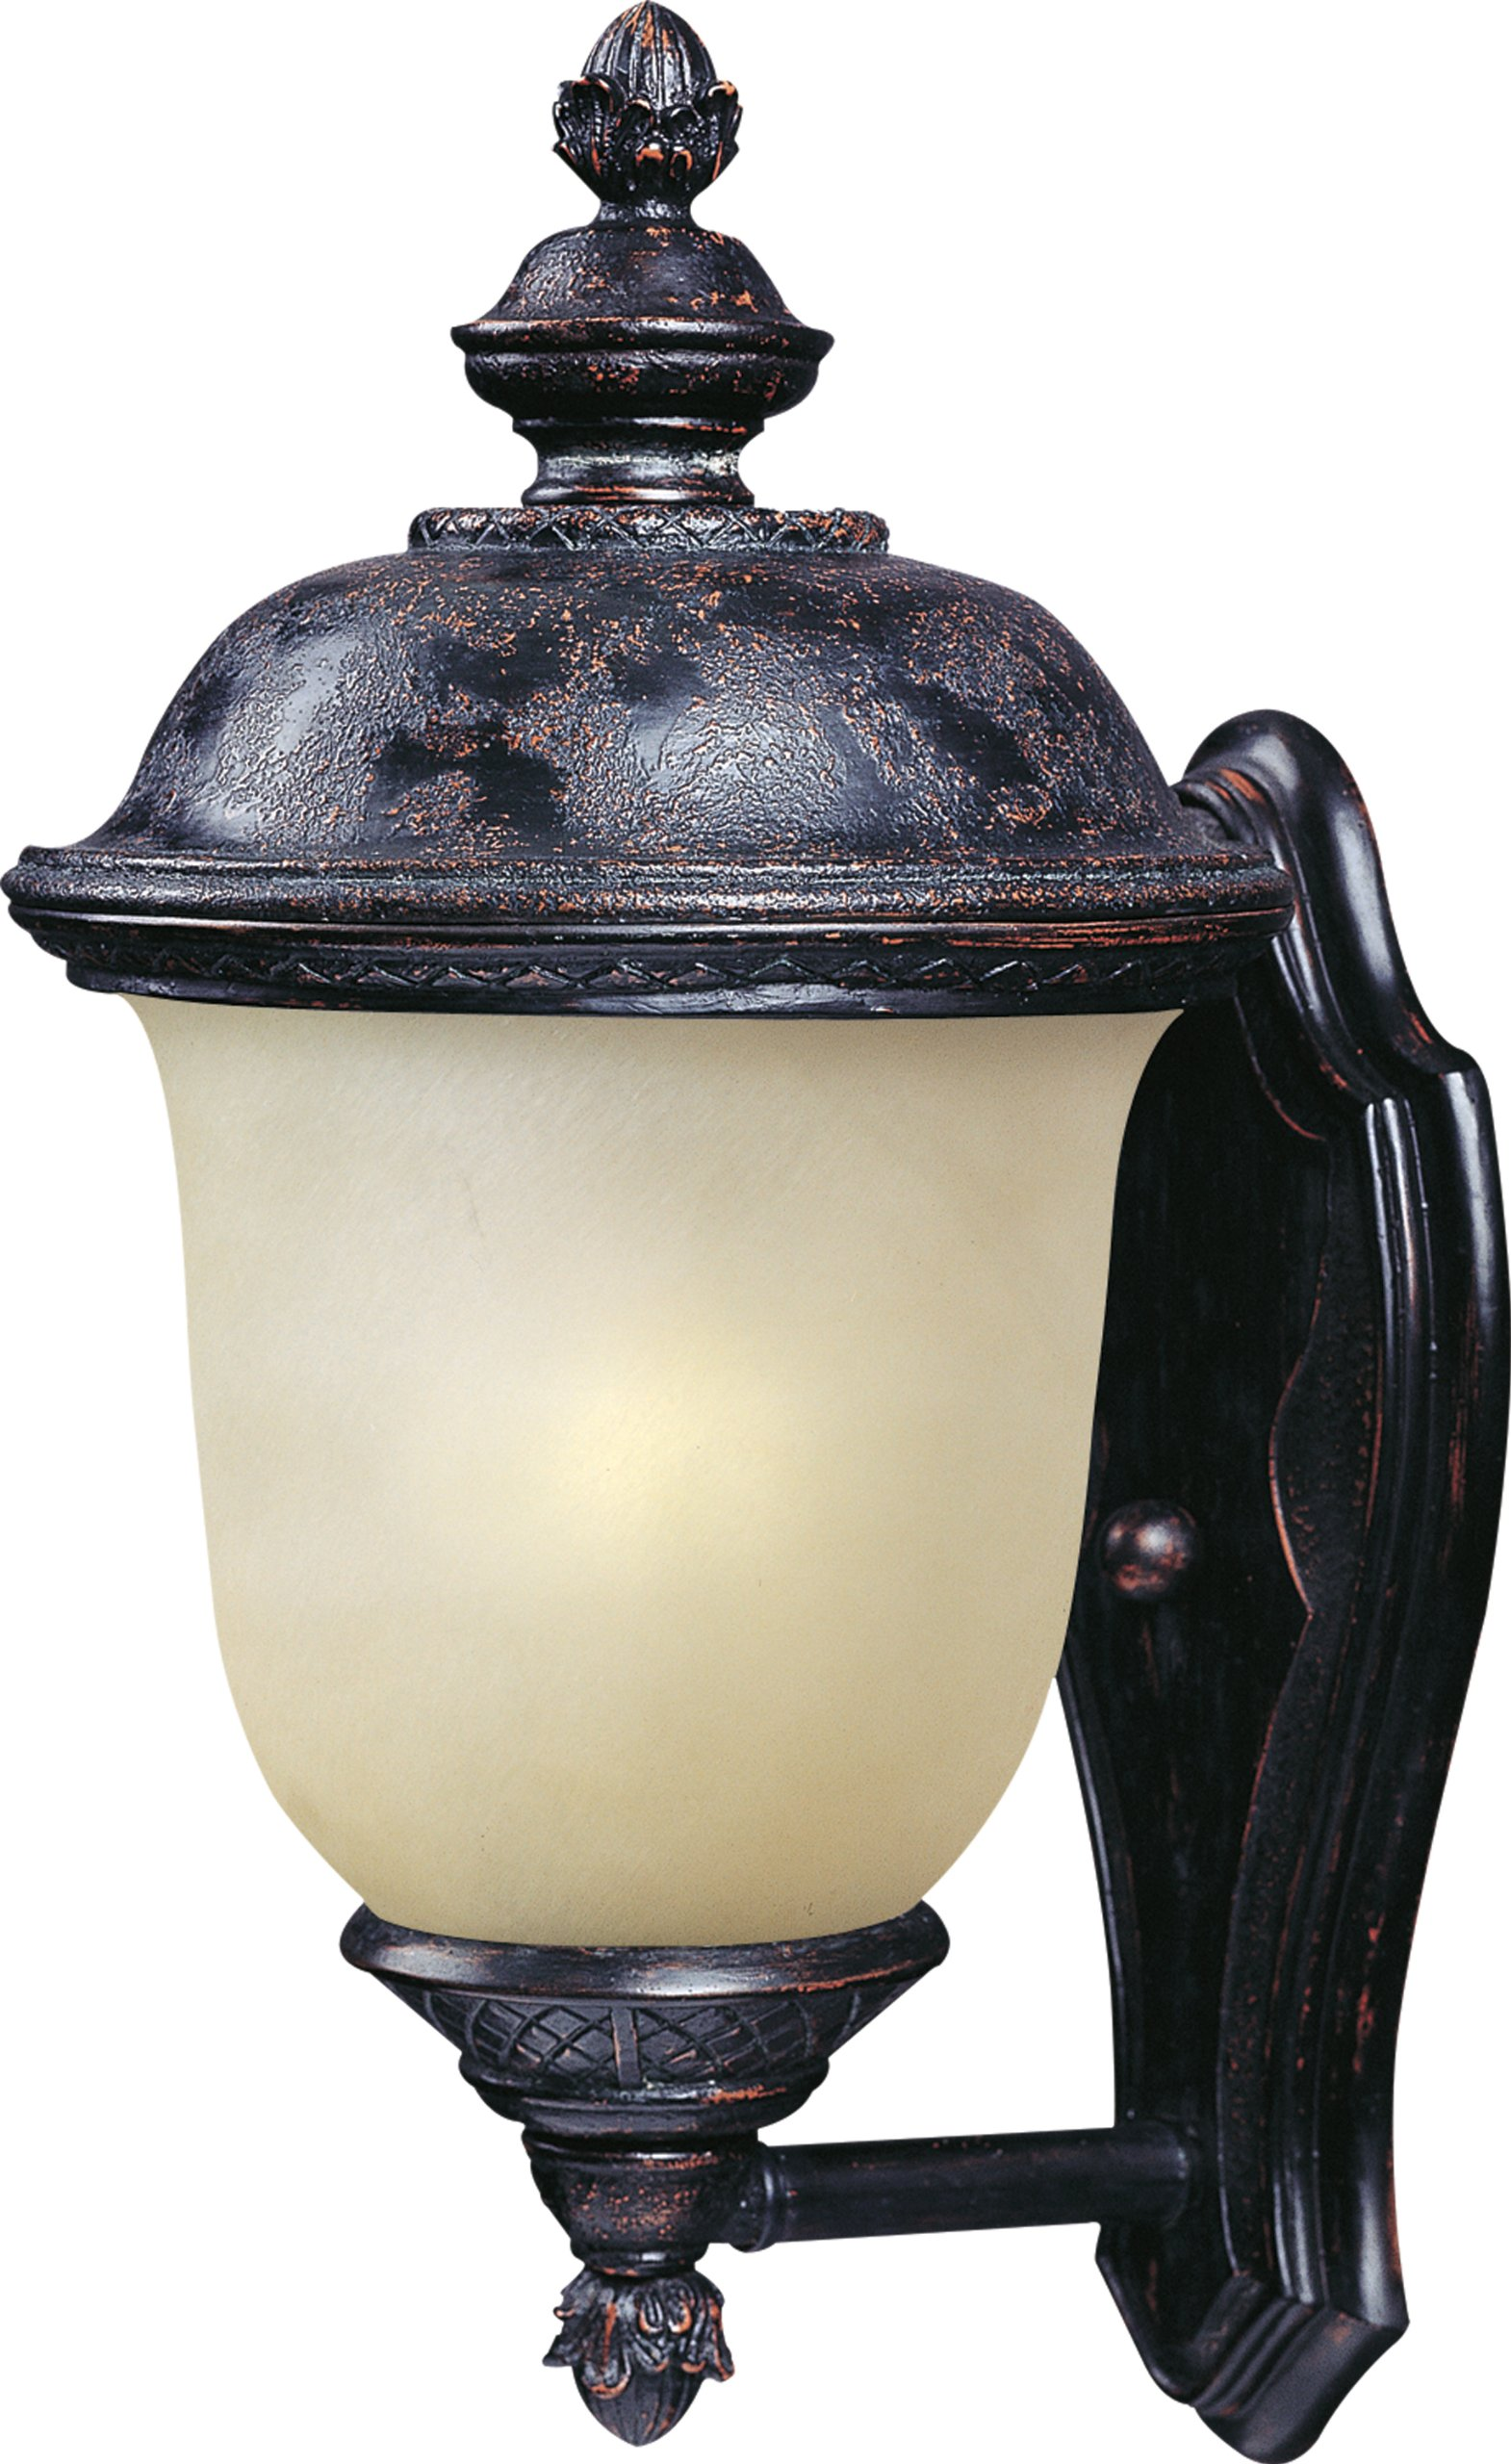 Maxim 86522MOOB Carriage House EE 1-Light Outdoor Wall Lantern, Oriental Bronze Finish, Mocha Glass, GU24 Fluorescent Fluorescent Bulb , 60W Max., Damp Safety Rating, Standard Dimmable, Glass Shade Material, 1344 Rated Lumens